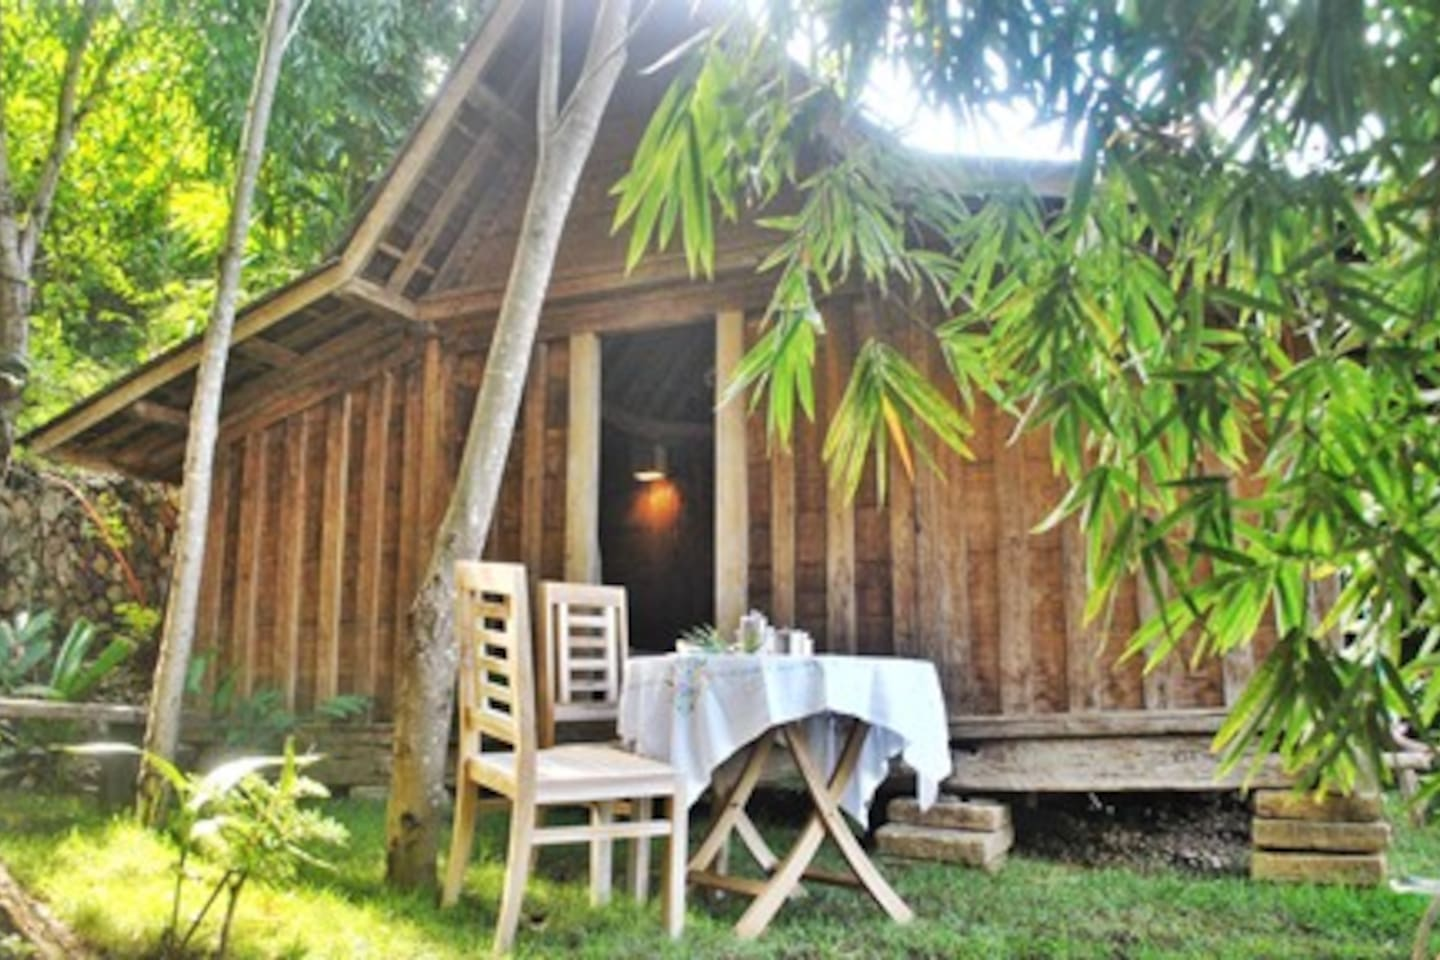 The Lumbung Hutan : the wooden house in the forest.